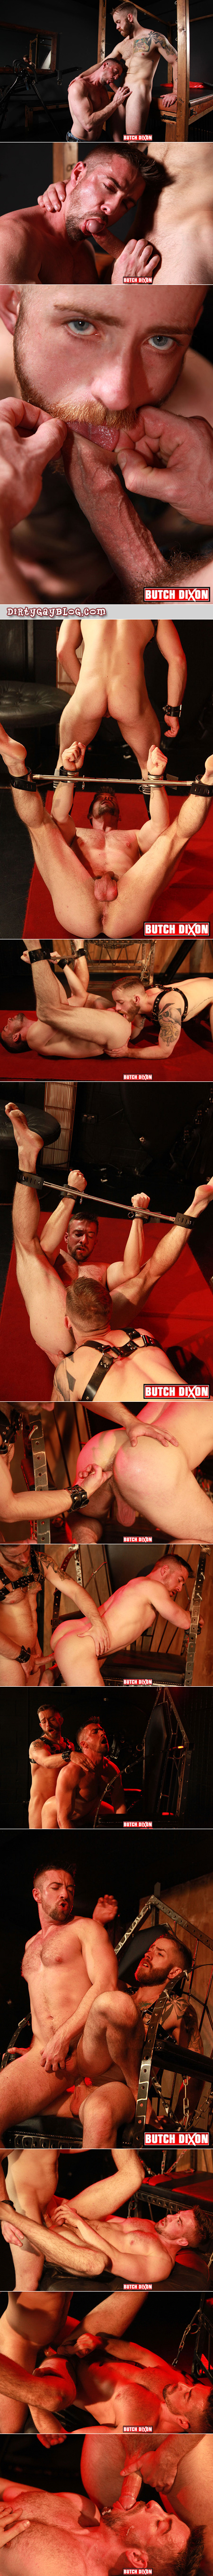 Short bearded guy fucks a tall muscular man in gay bondage.